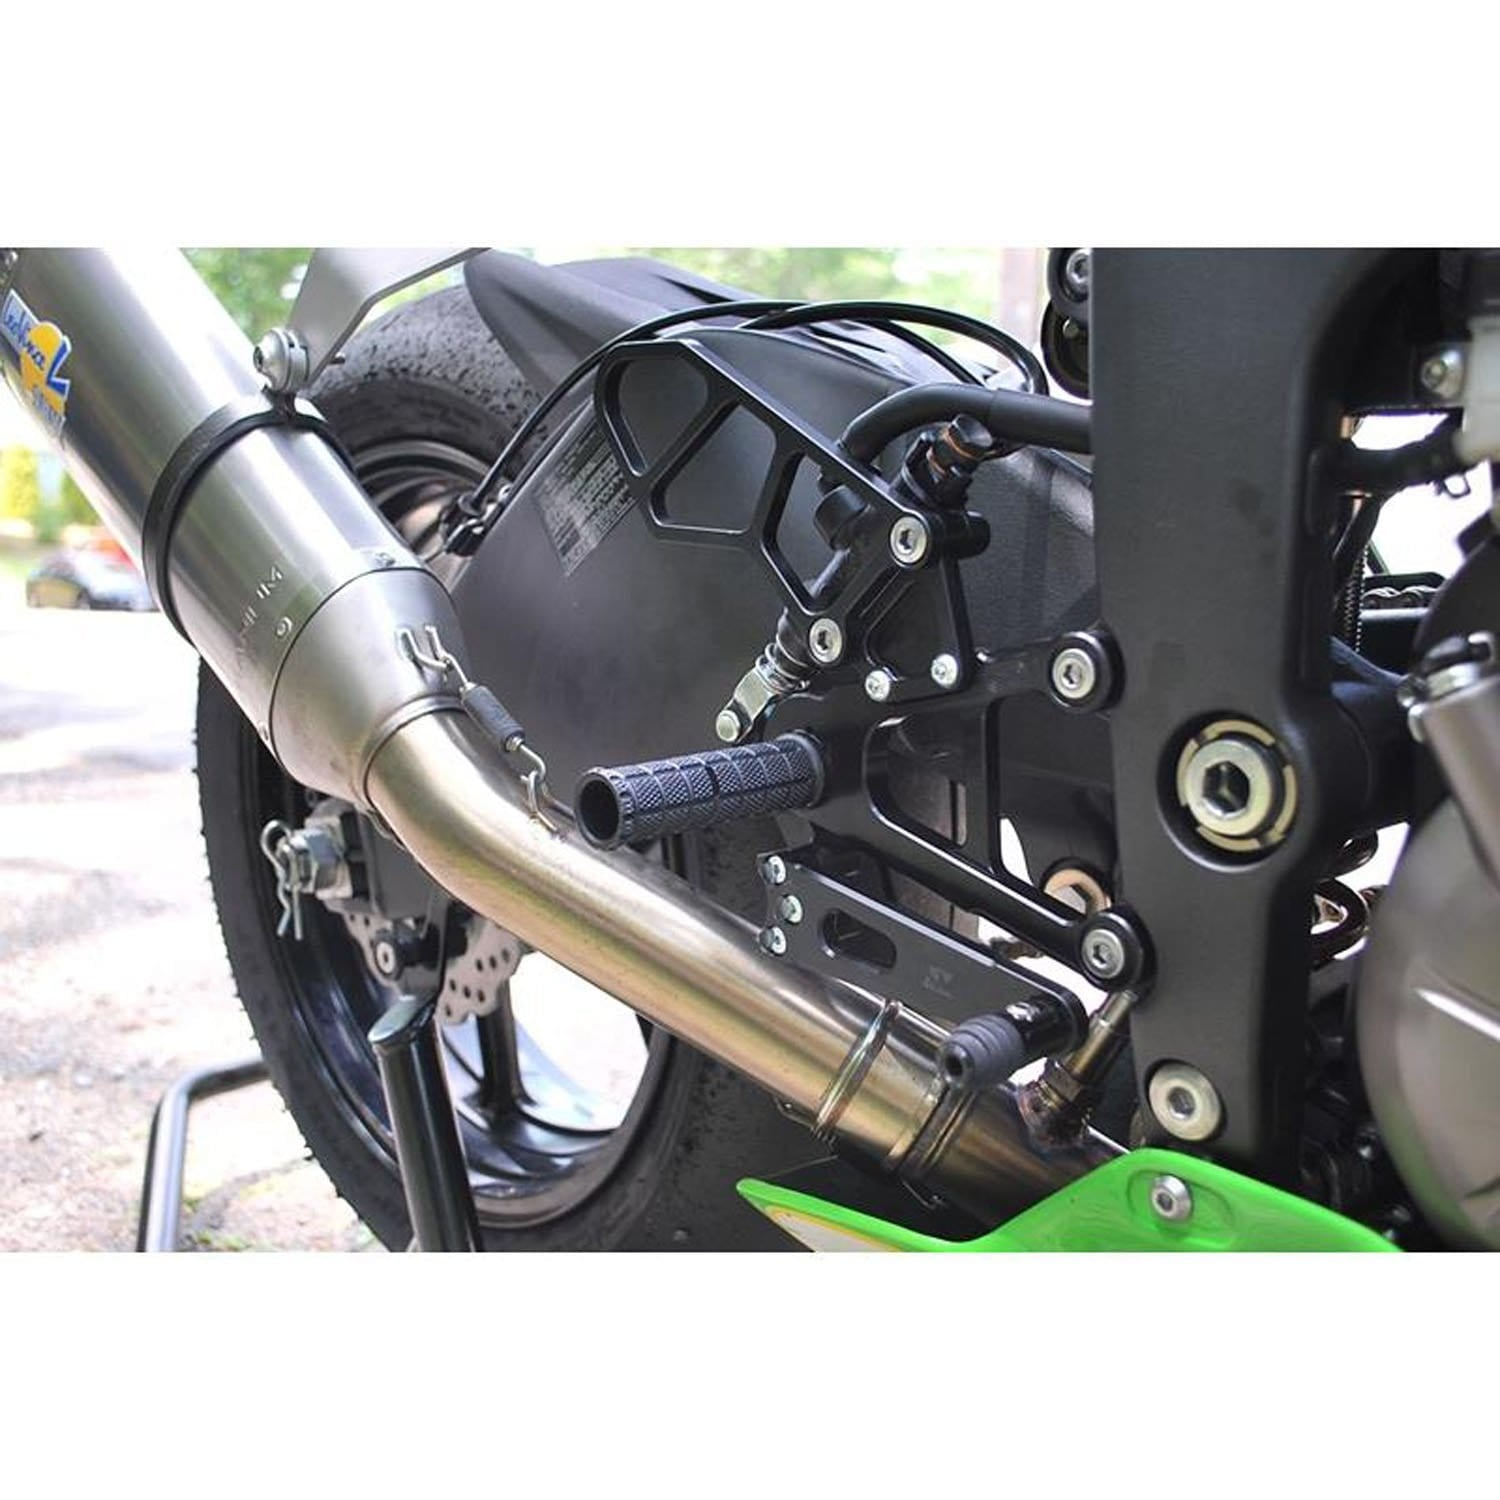 05-0151 Kaw ZX6R '19 Rearset Kit W/Brake Pedal, Black - Woodcraft Technologies - Motorcycle Parts